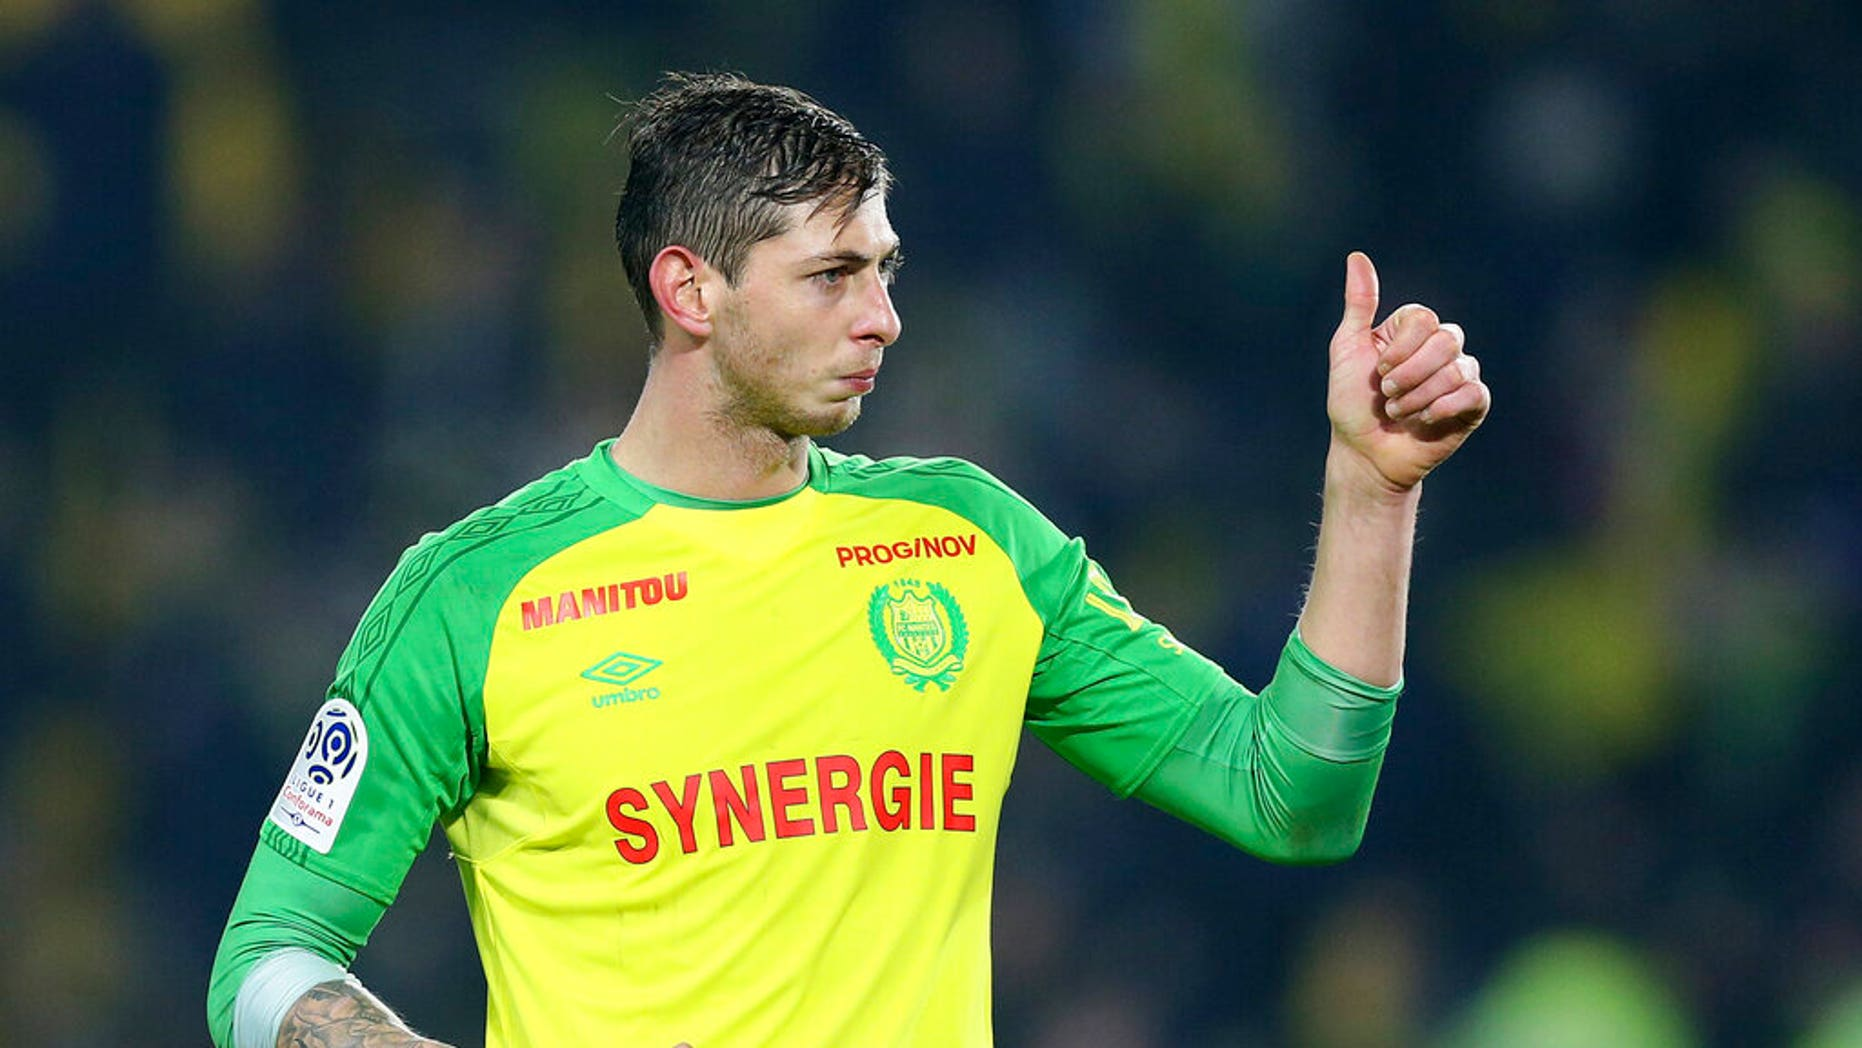 In this his picture taken on Jan. 14, 2018, Argentine soccer player, Emiliano Sala, of the FC Nantes club, western France, gives a thumbs up during a soccer match against PSG in Nantes, France.